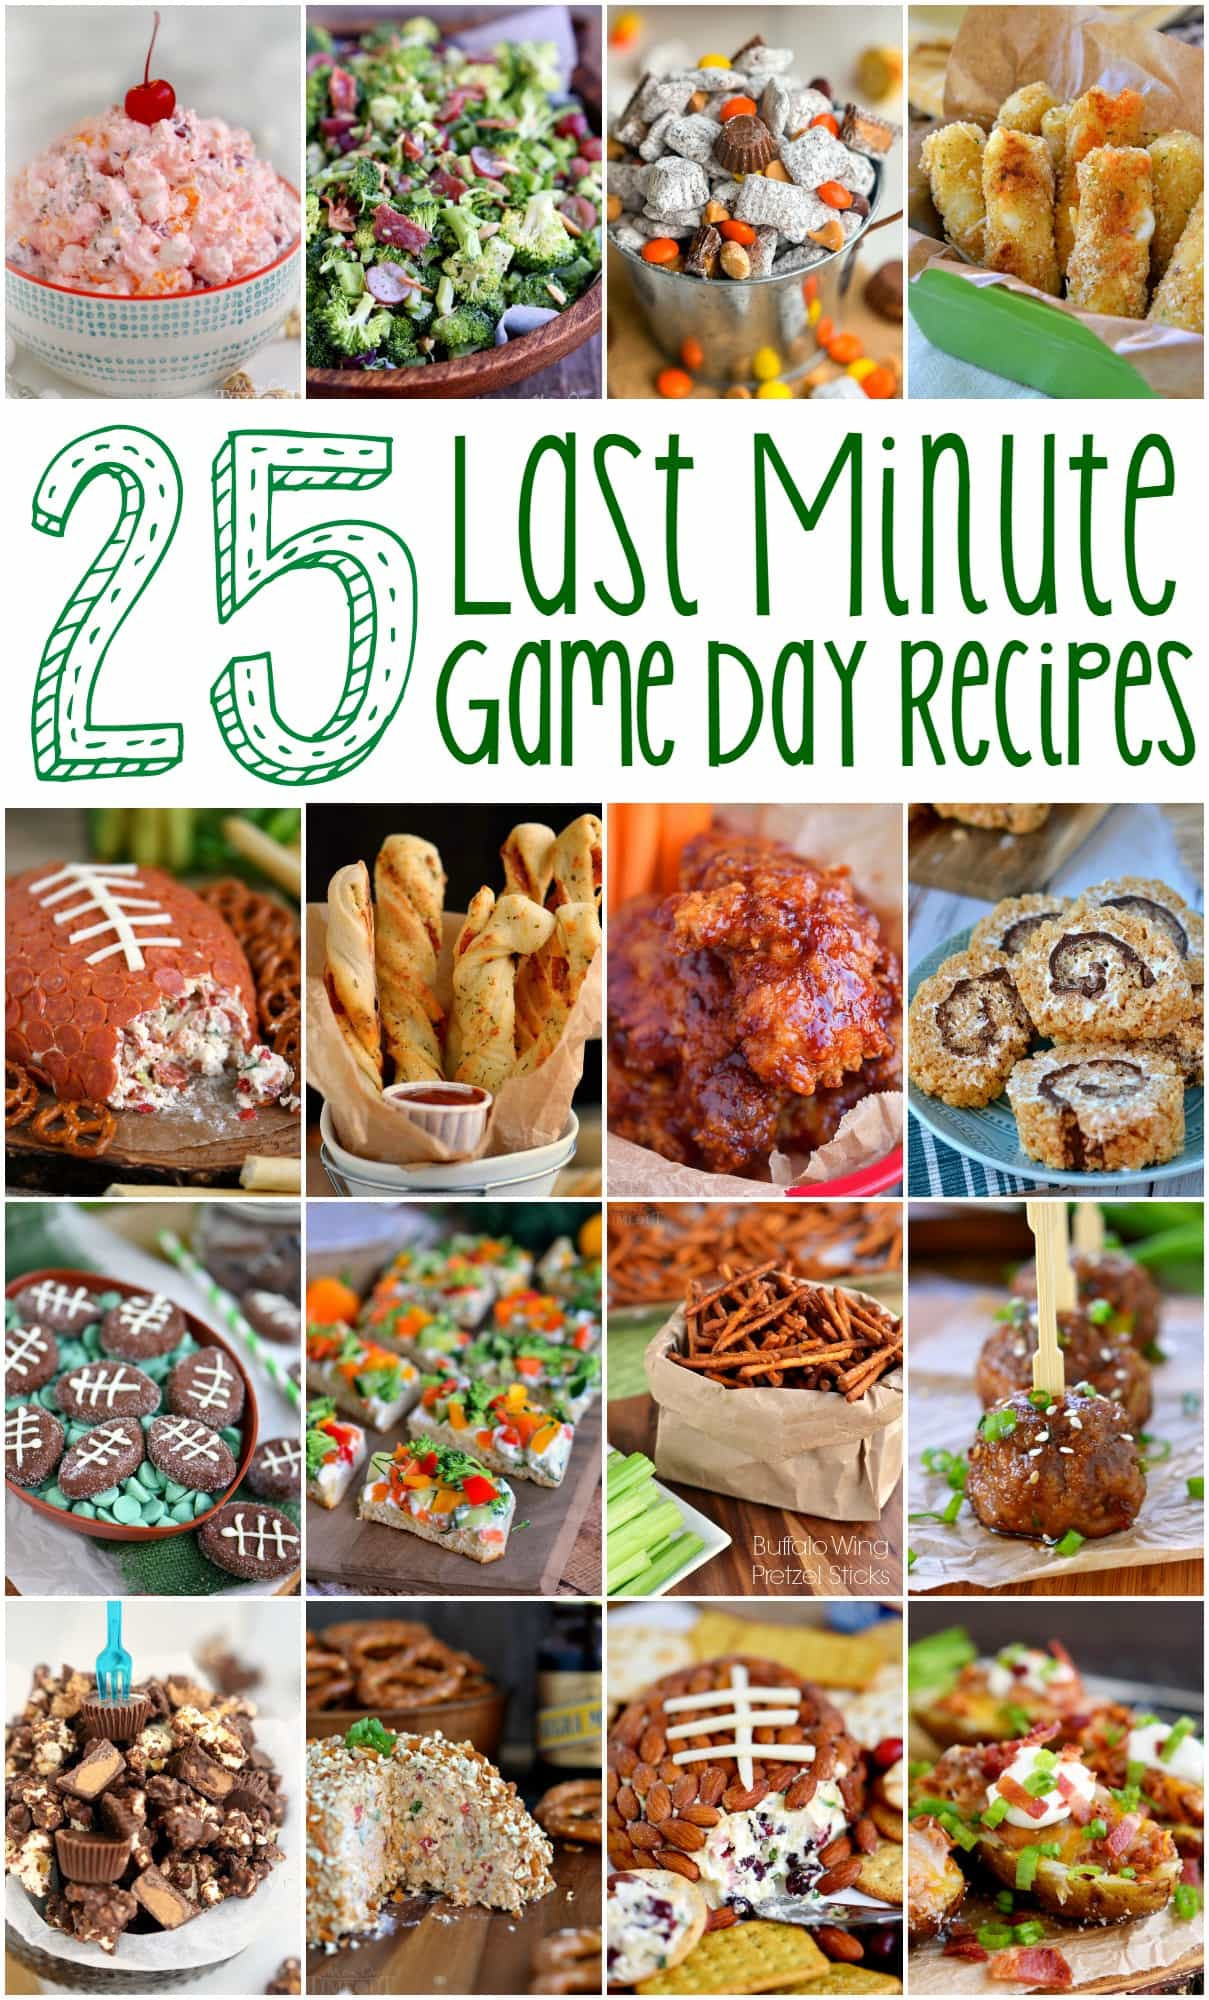 For those of you who procrastinate like I do...25 Last Minute Game Day Recipes that require minimal ingredients and time! Sweets, savory, snacks - you'll find it all here!